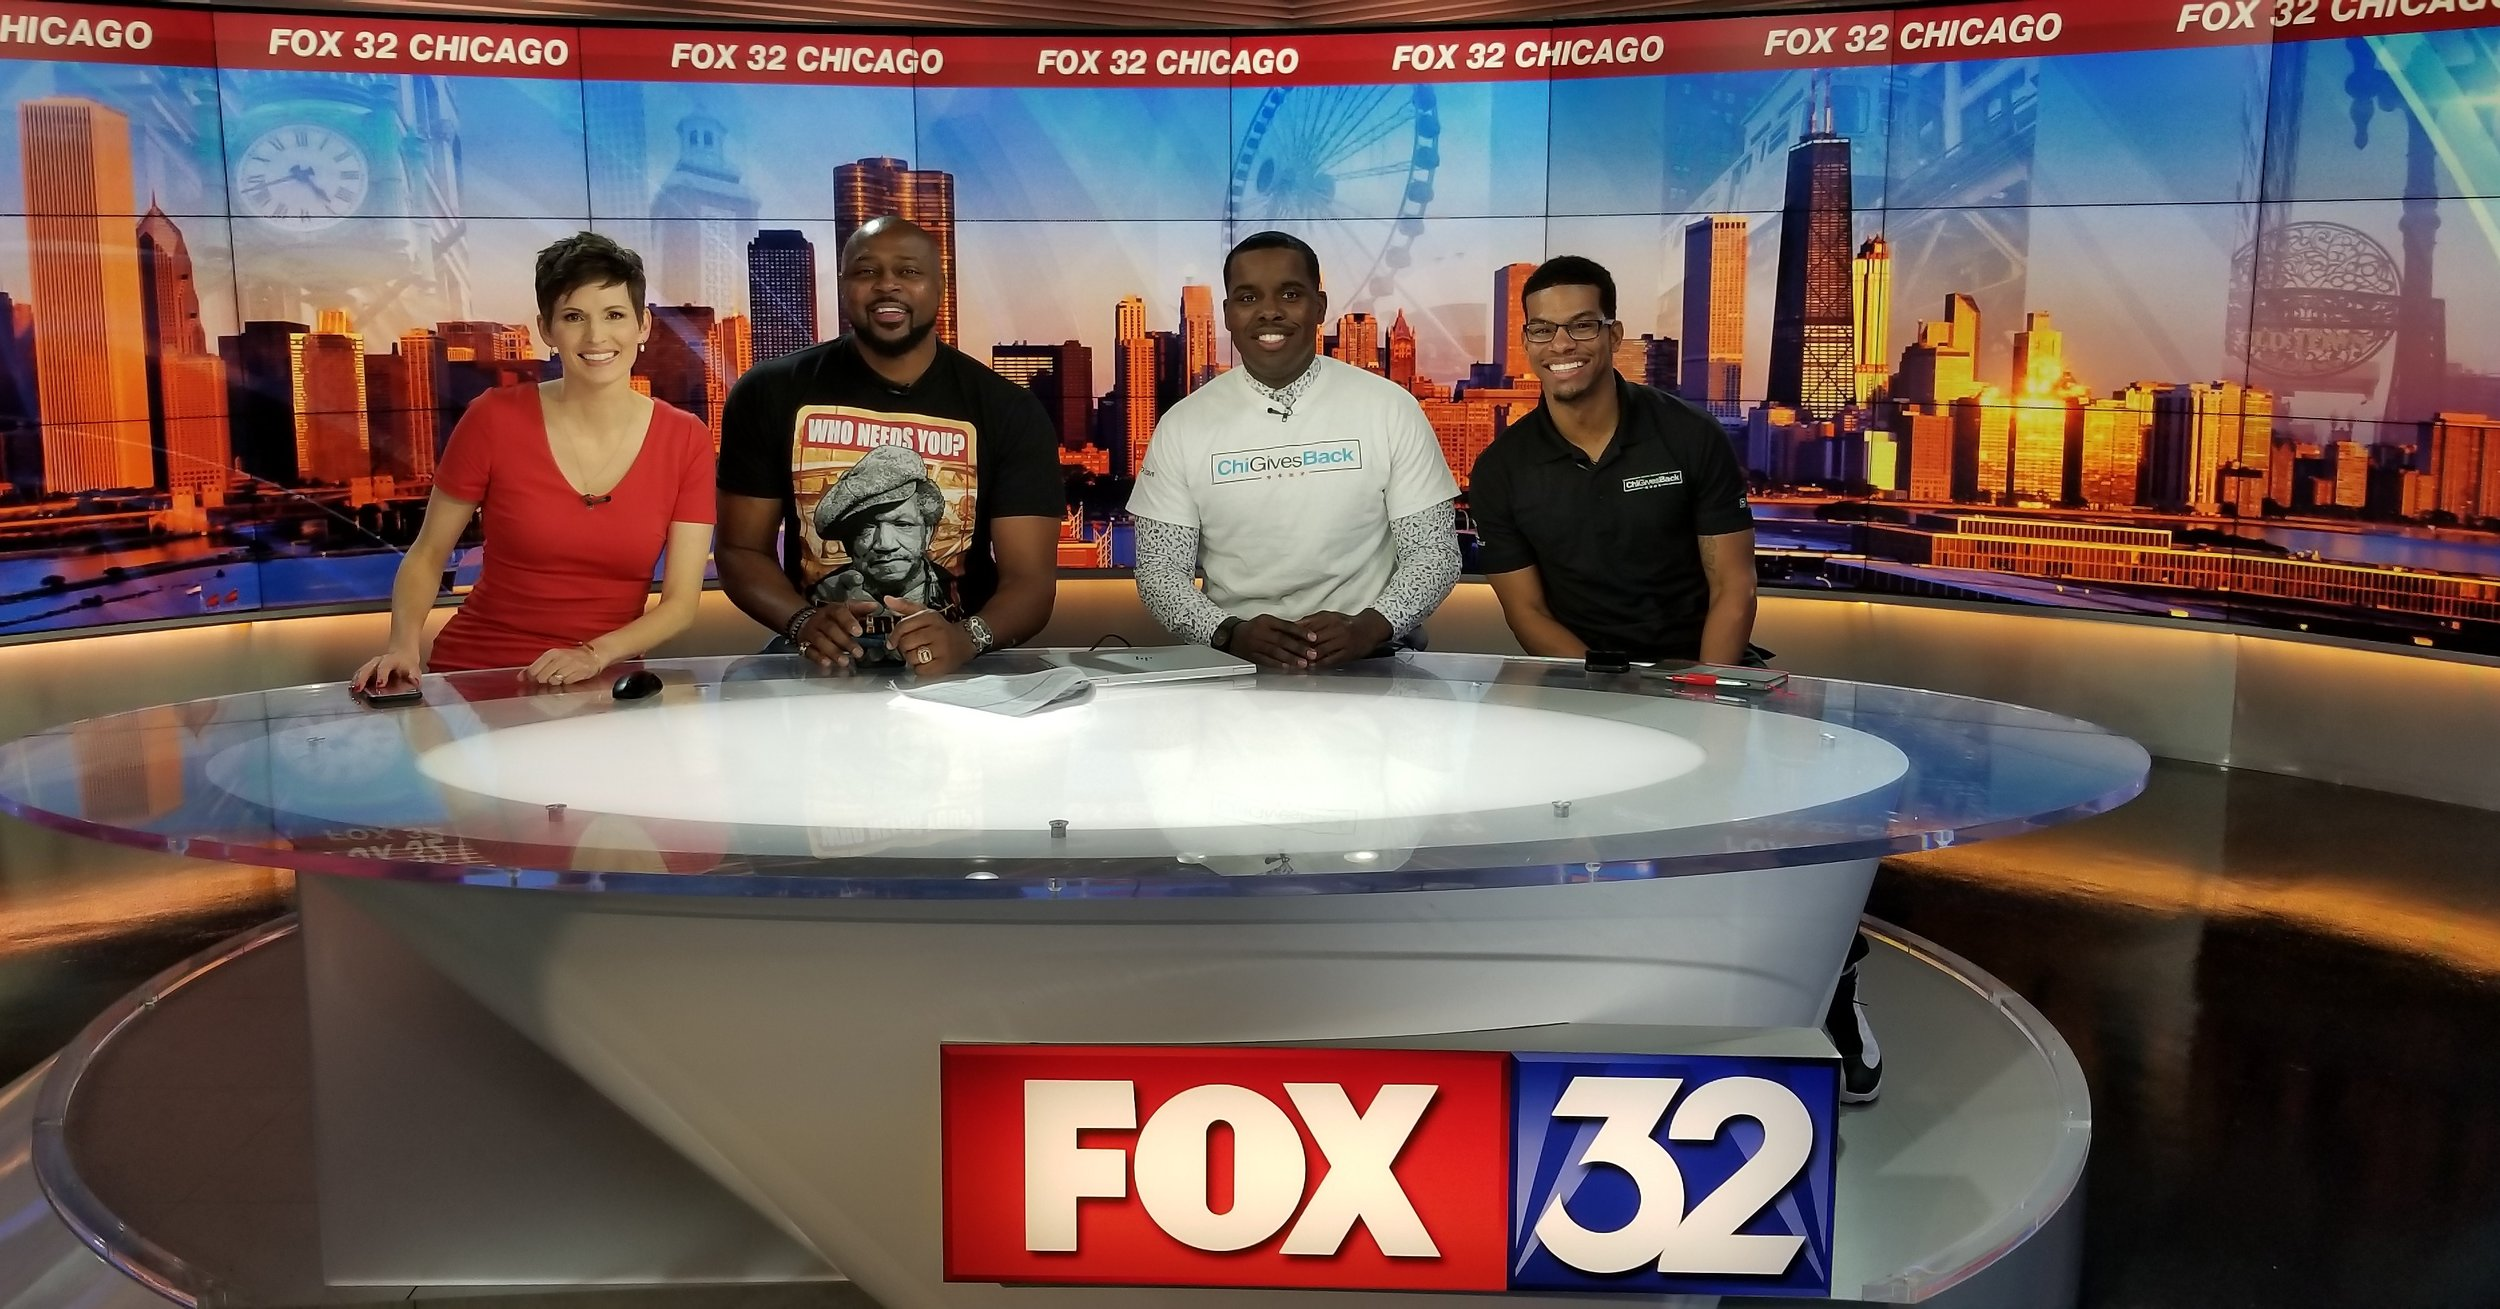 Sally Schulze of Fox32, Horace Grant, Kouri Marshall, Co-Founder of ChiGivesBack & John Boddie, Co-Founder of ChiGivesBack.